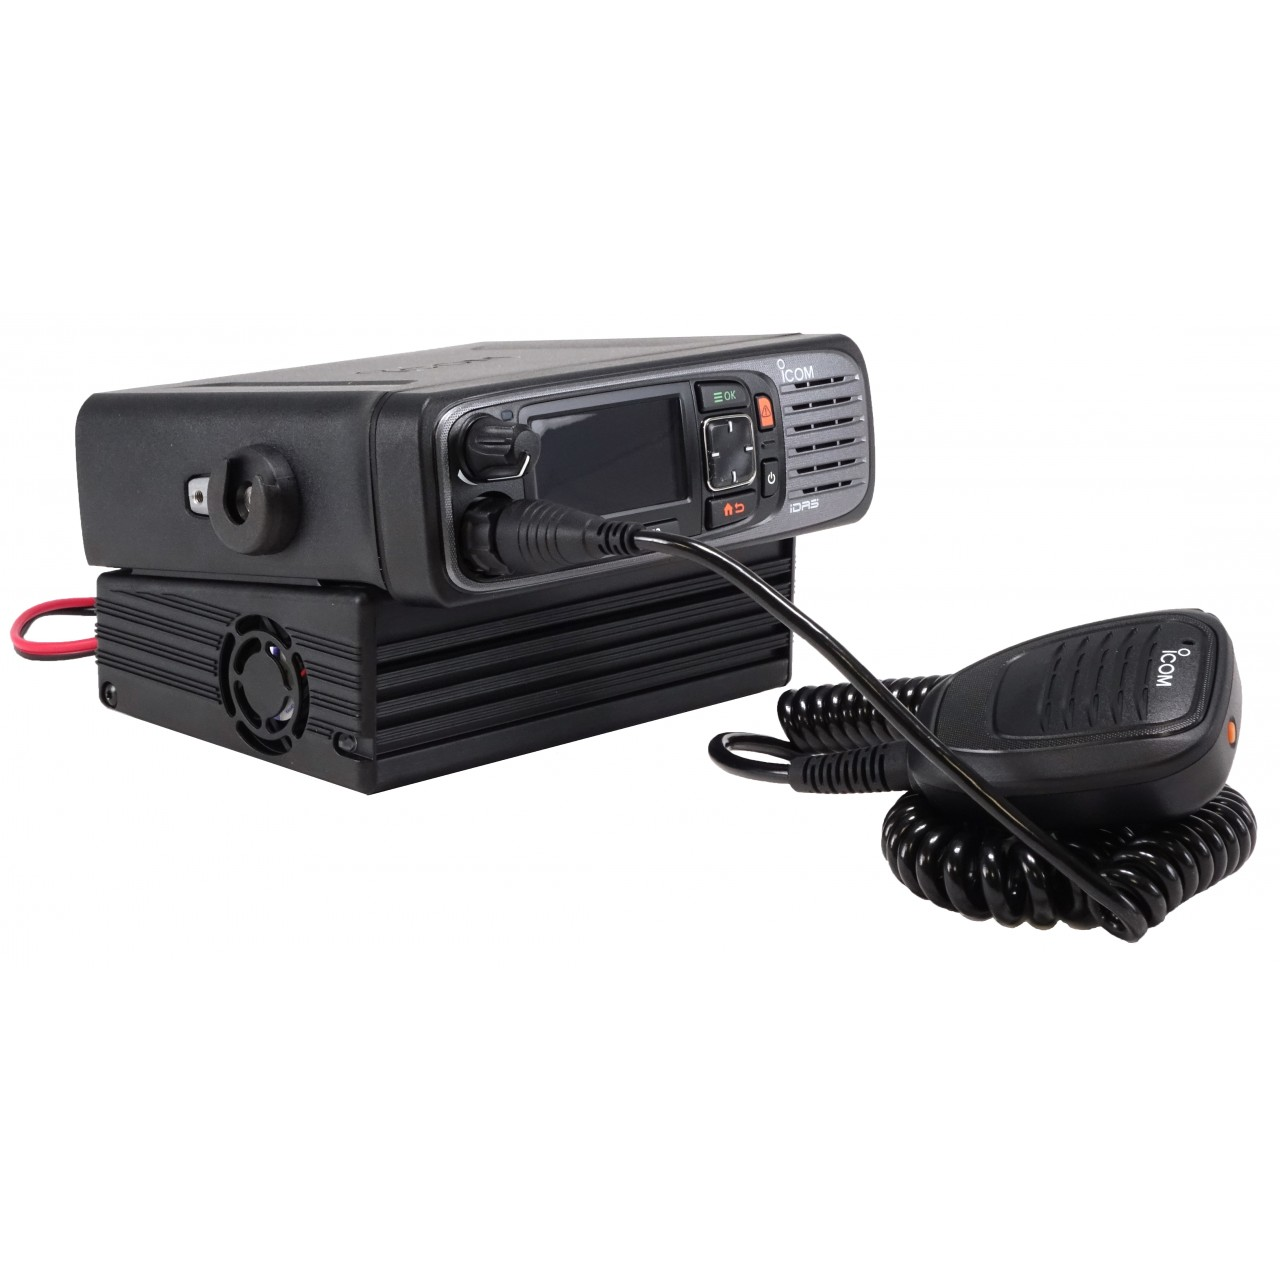 PS-ADF5400 Chargers and alimentations - ICOM